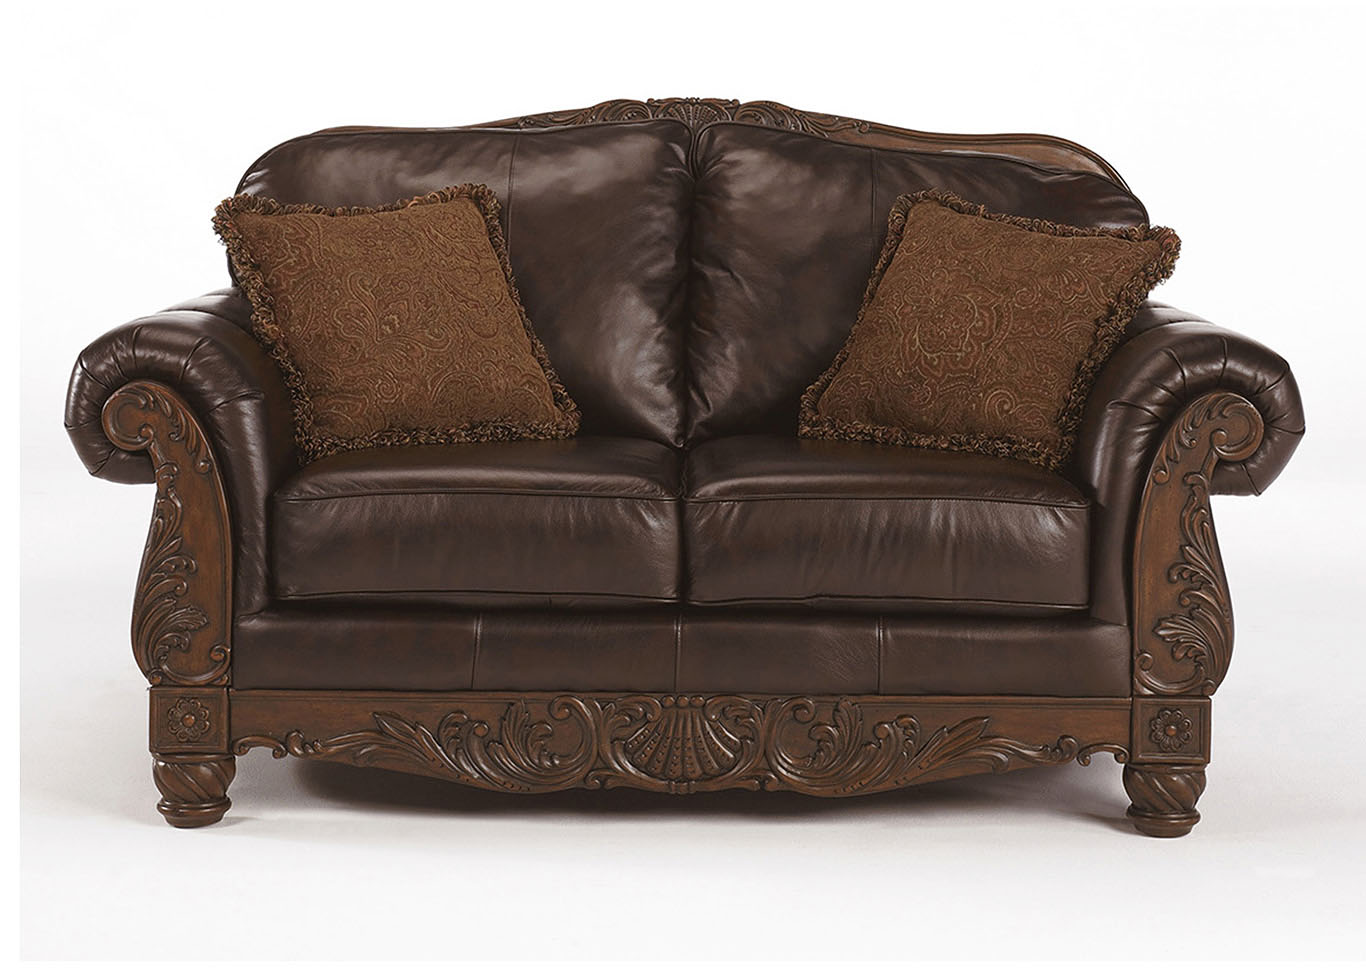 North Shore Dark Brown Loveseat,Millennium